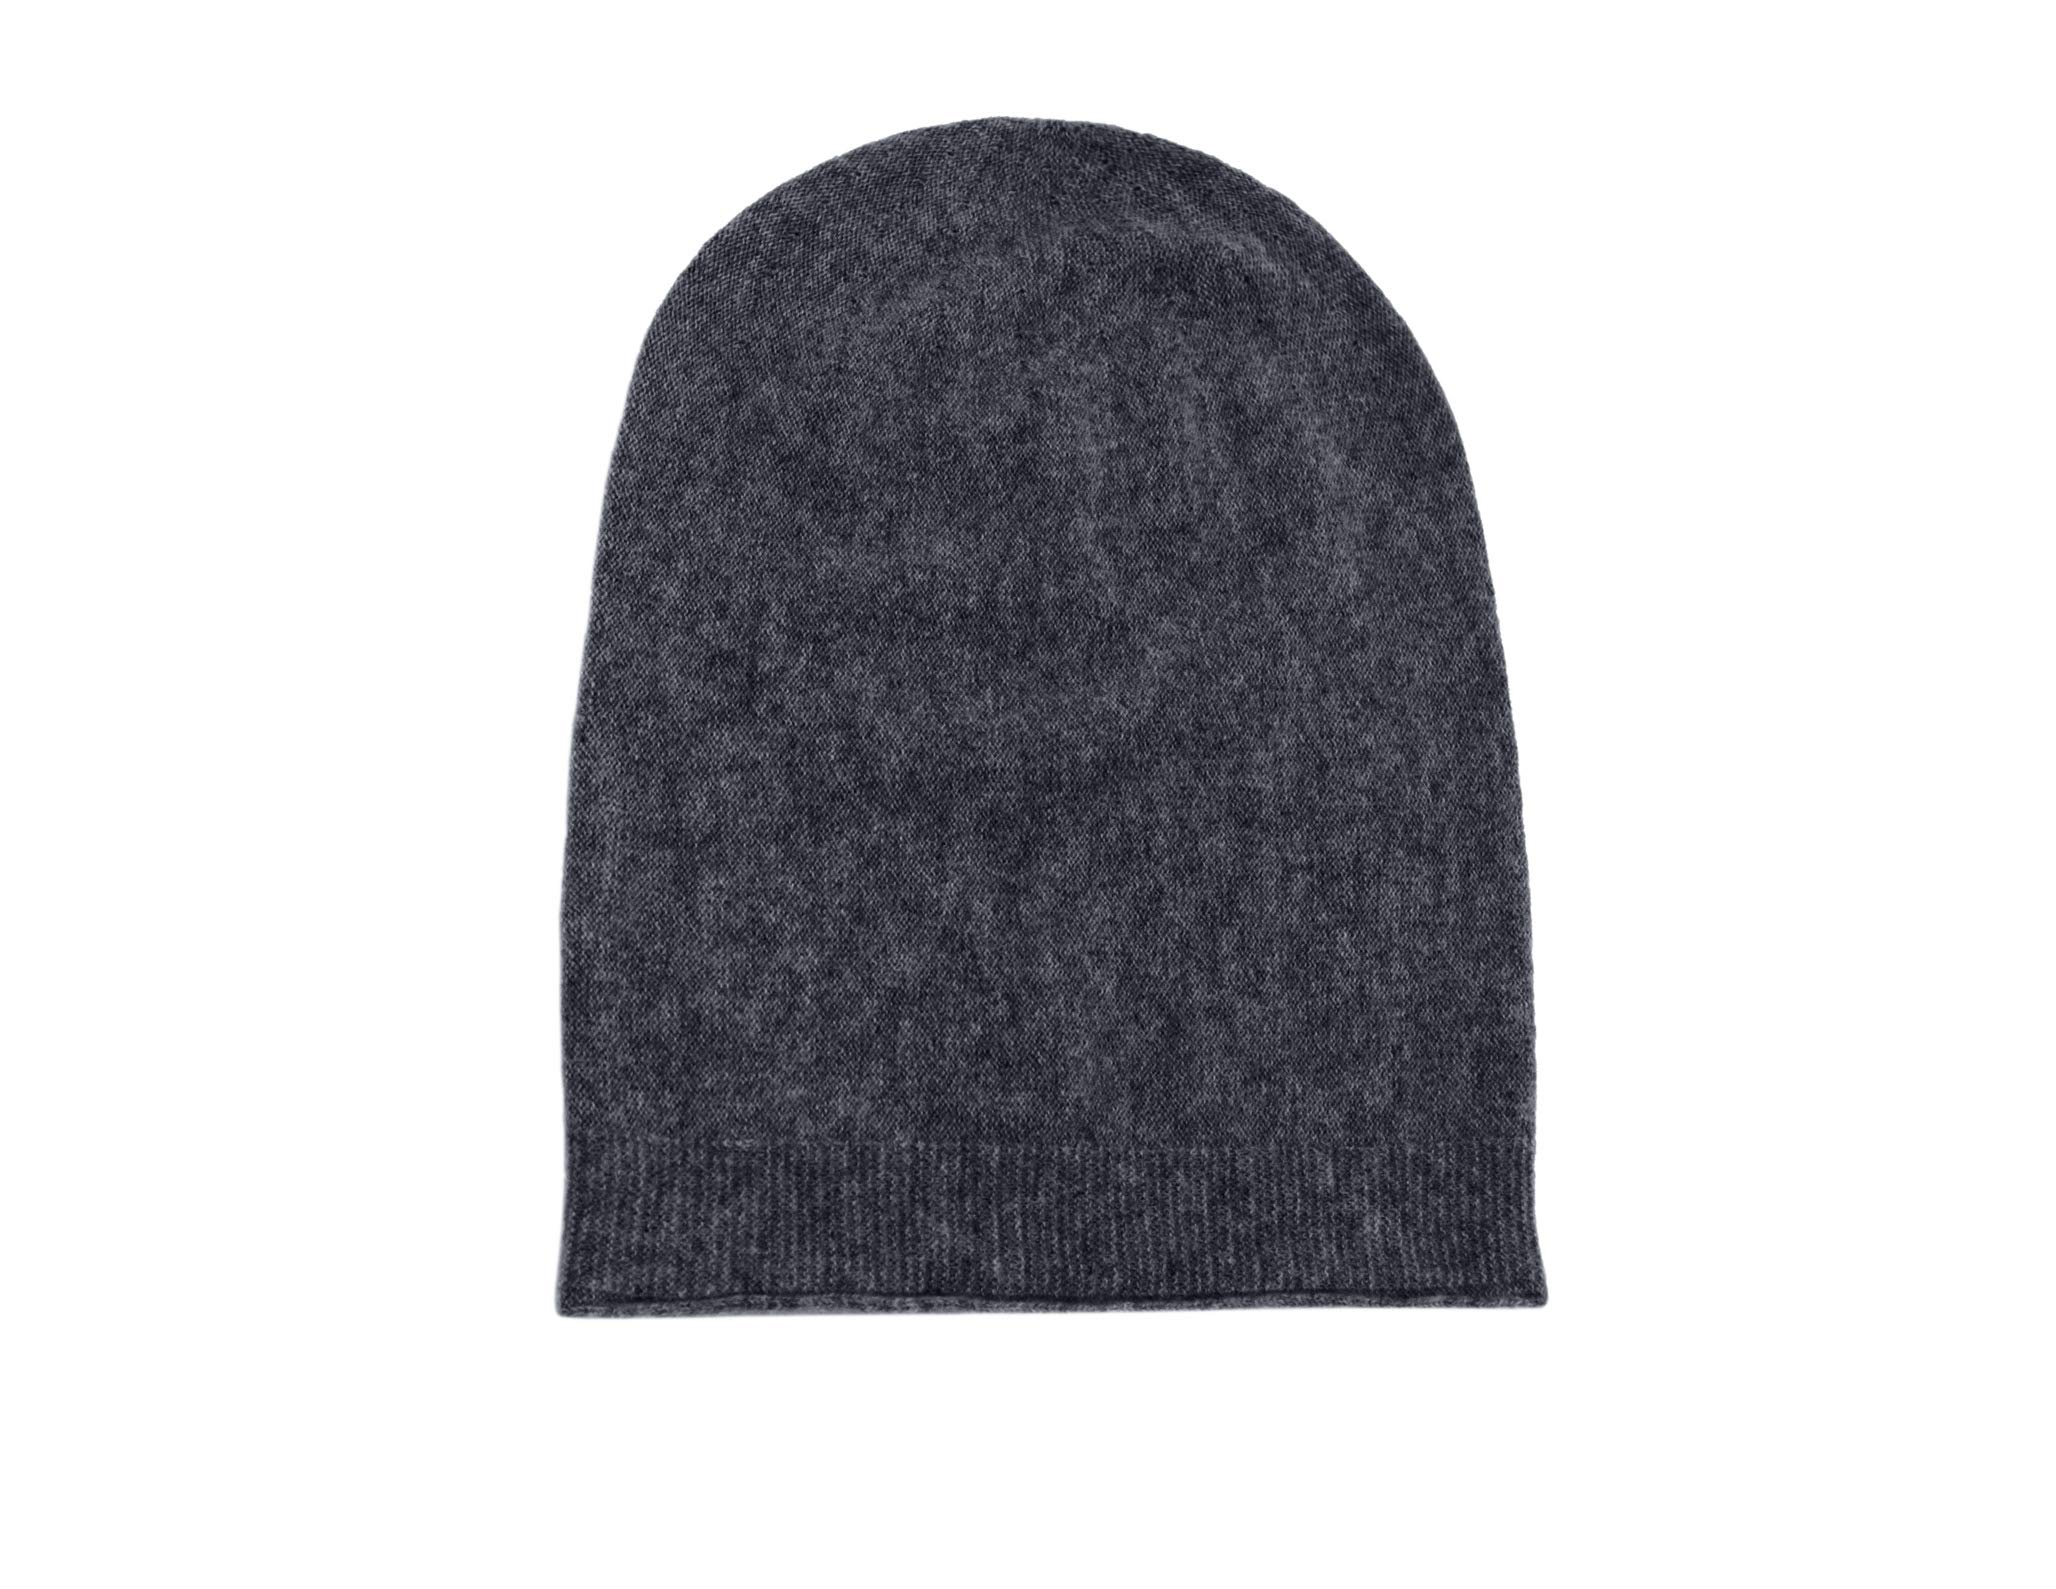 State Fusio Warm Wool Cashmere Winter Hat Beanie for Men and Women Charcoal